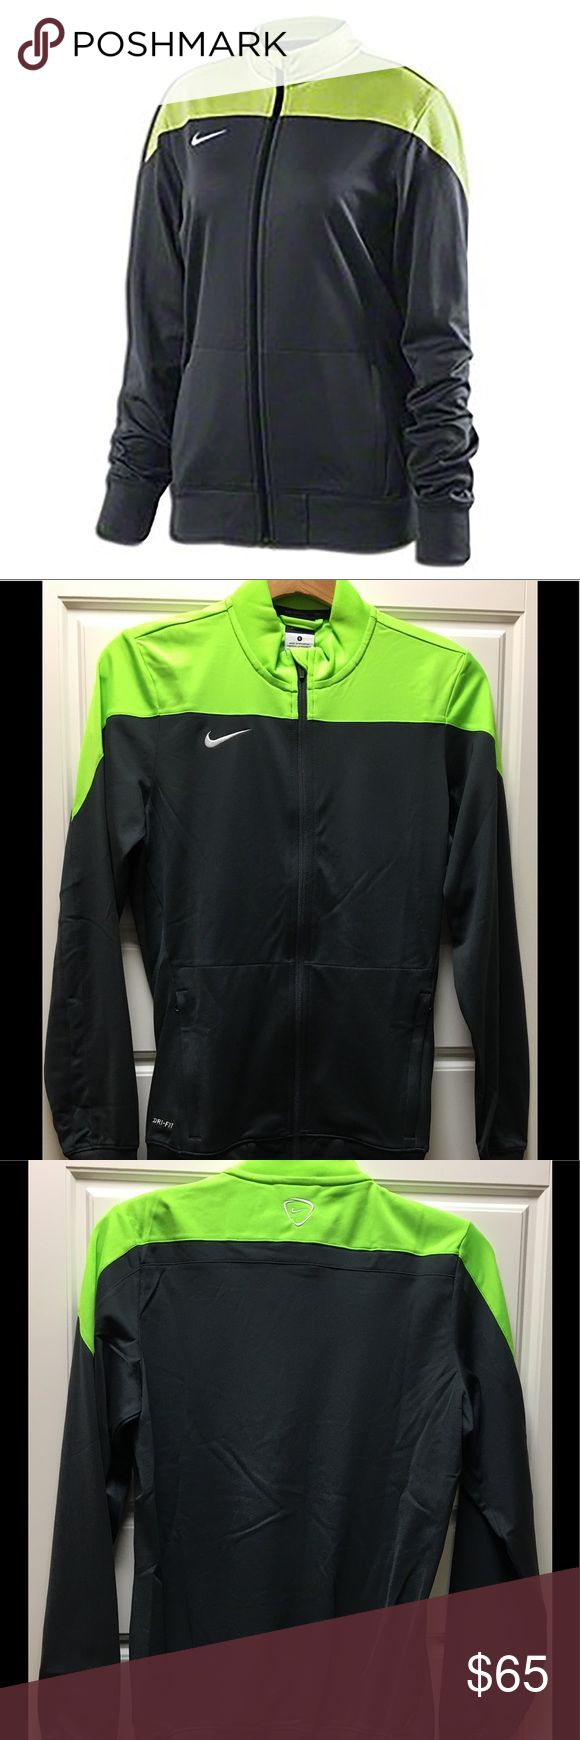 Nike Women's Squad 14 Sideline Knit Jacket Lightweight jacket for players and teams. Full-zip with stand-up collar (covered zipper at chin). Size pockets. Wide ribbed waist and cuffs. Embroidered Nike logo at chest and back neck. Polyester. Nike Jackets & Coats Utility Jackets